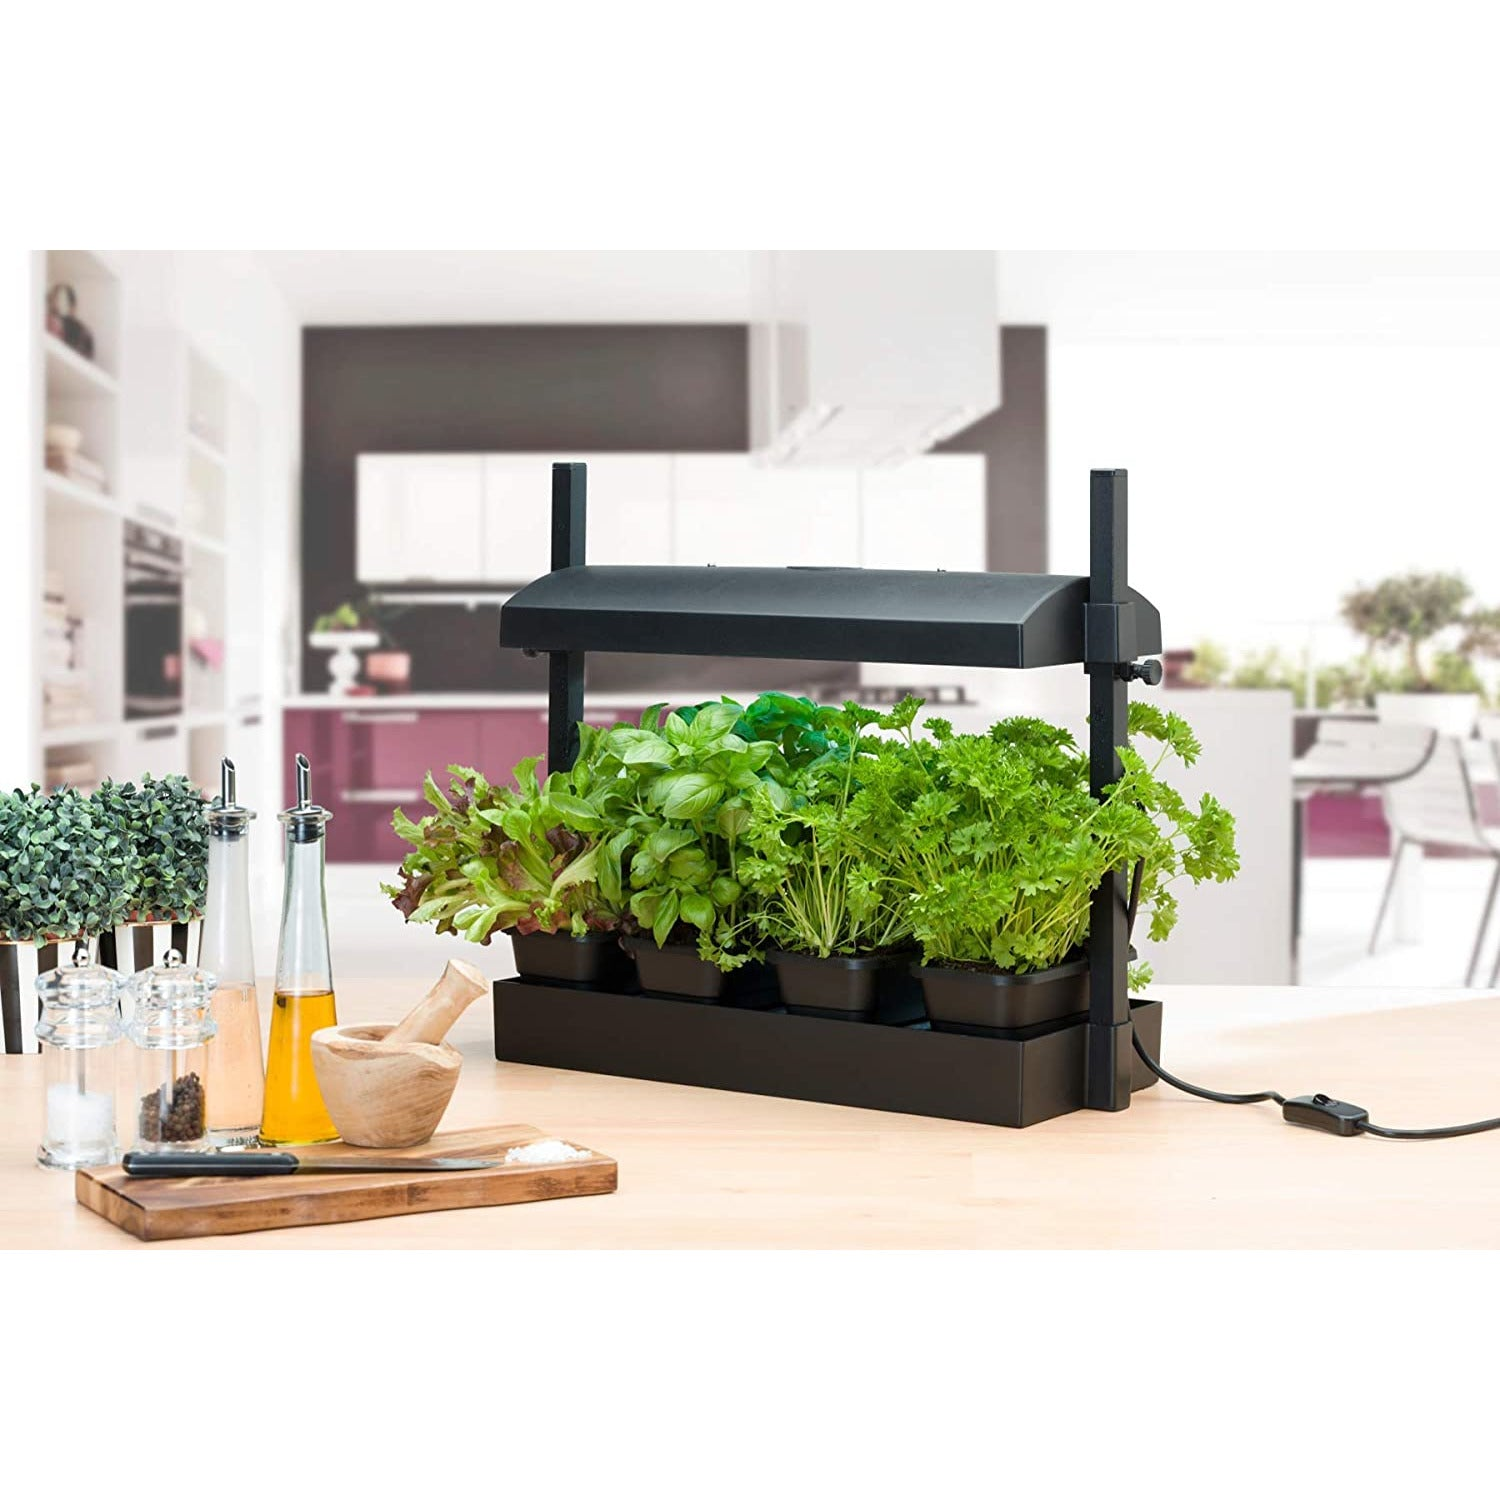 SALE Sunblaster Micro T5 Grow Light Garden, Black